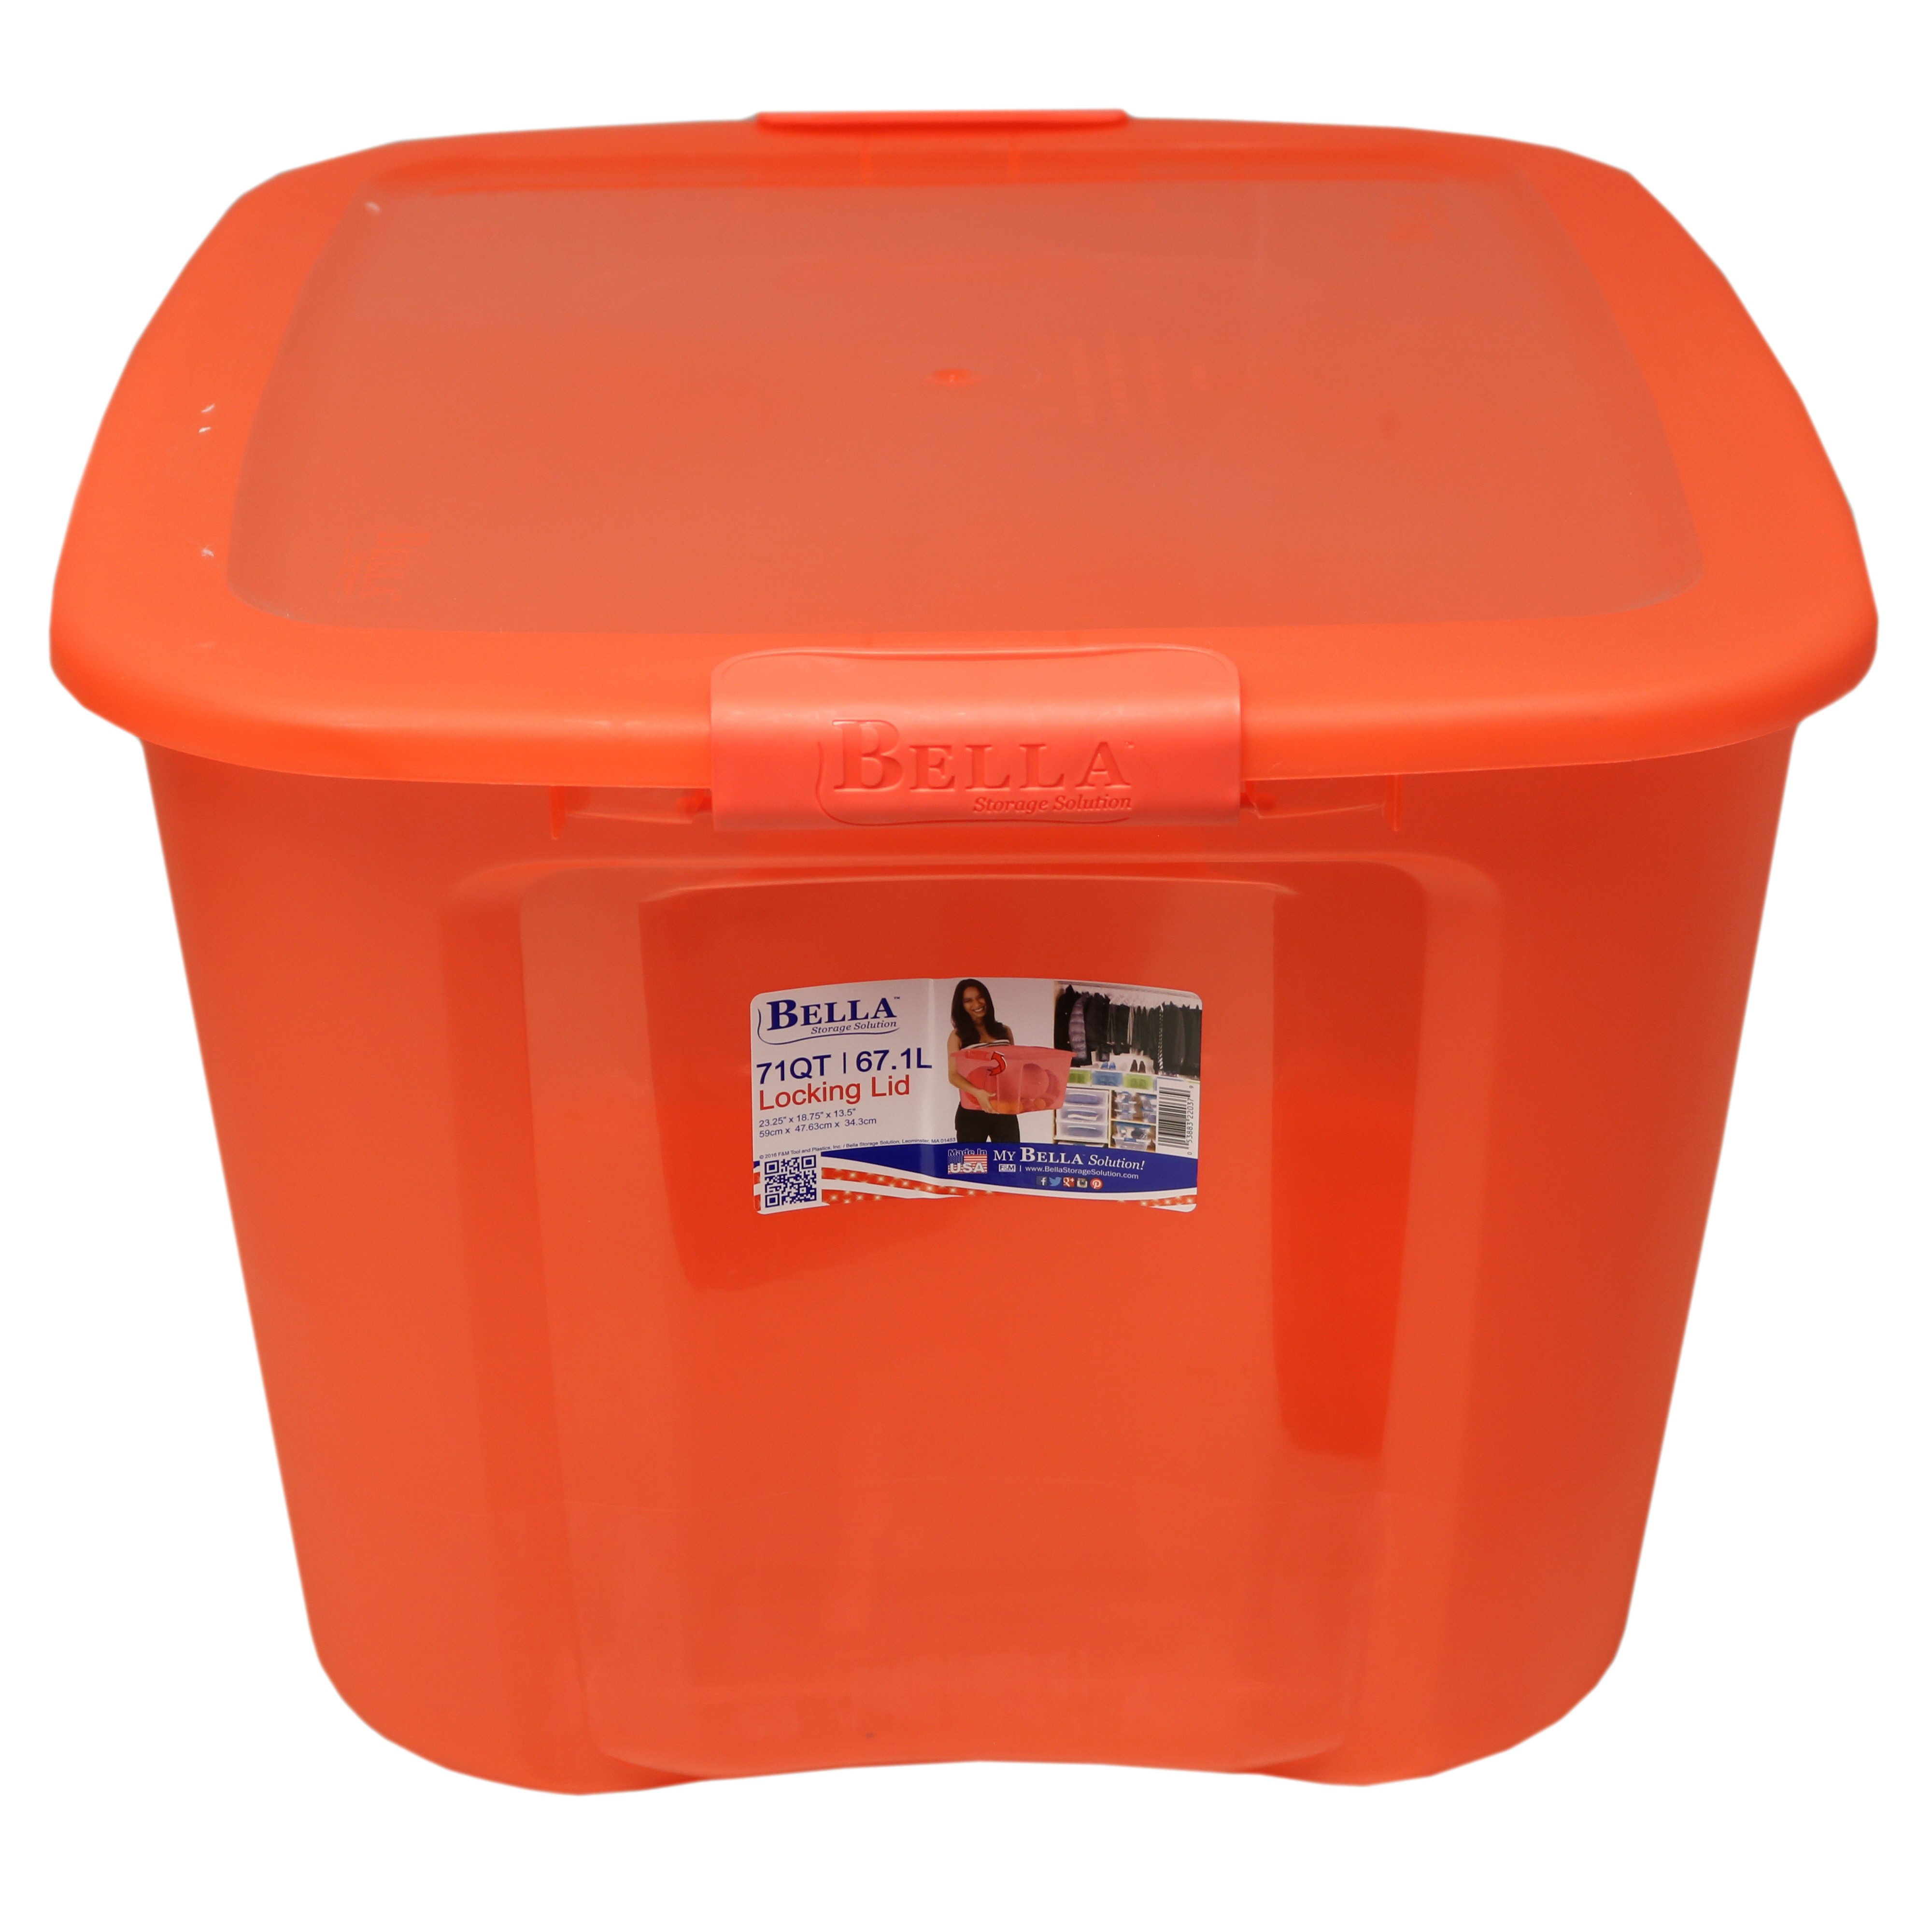 Bella 71 QT Storage Container With Locking Lid, Coral U2011 Shop Bella 71 QT Storage  Container With Locking Lid, Coral U2011 Shop Bella 71 QT Storage Container With  ...